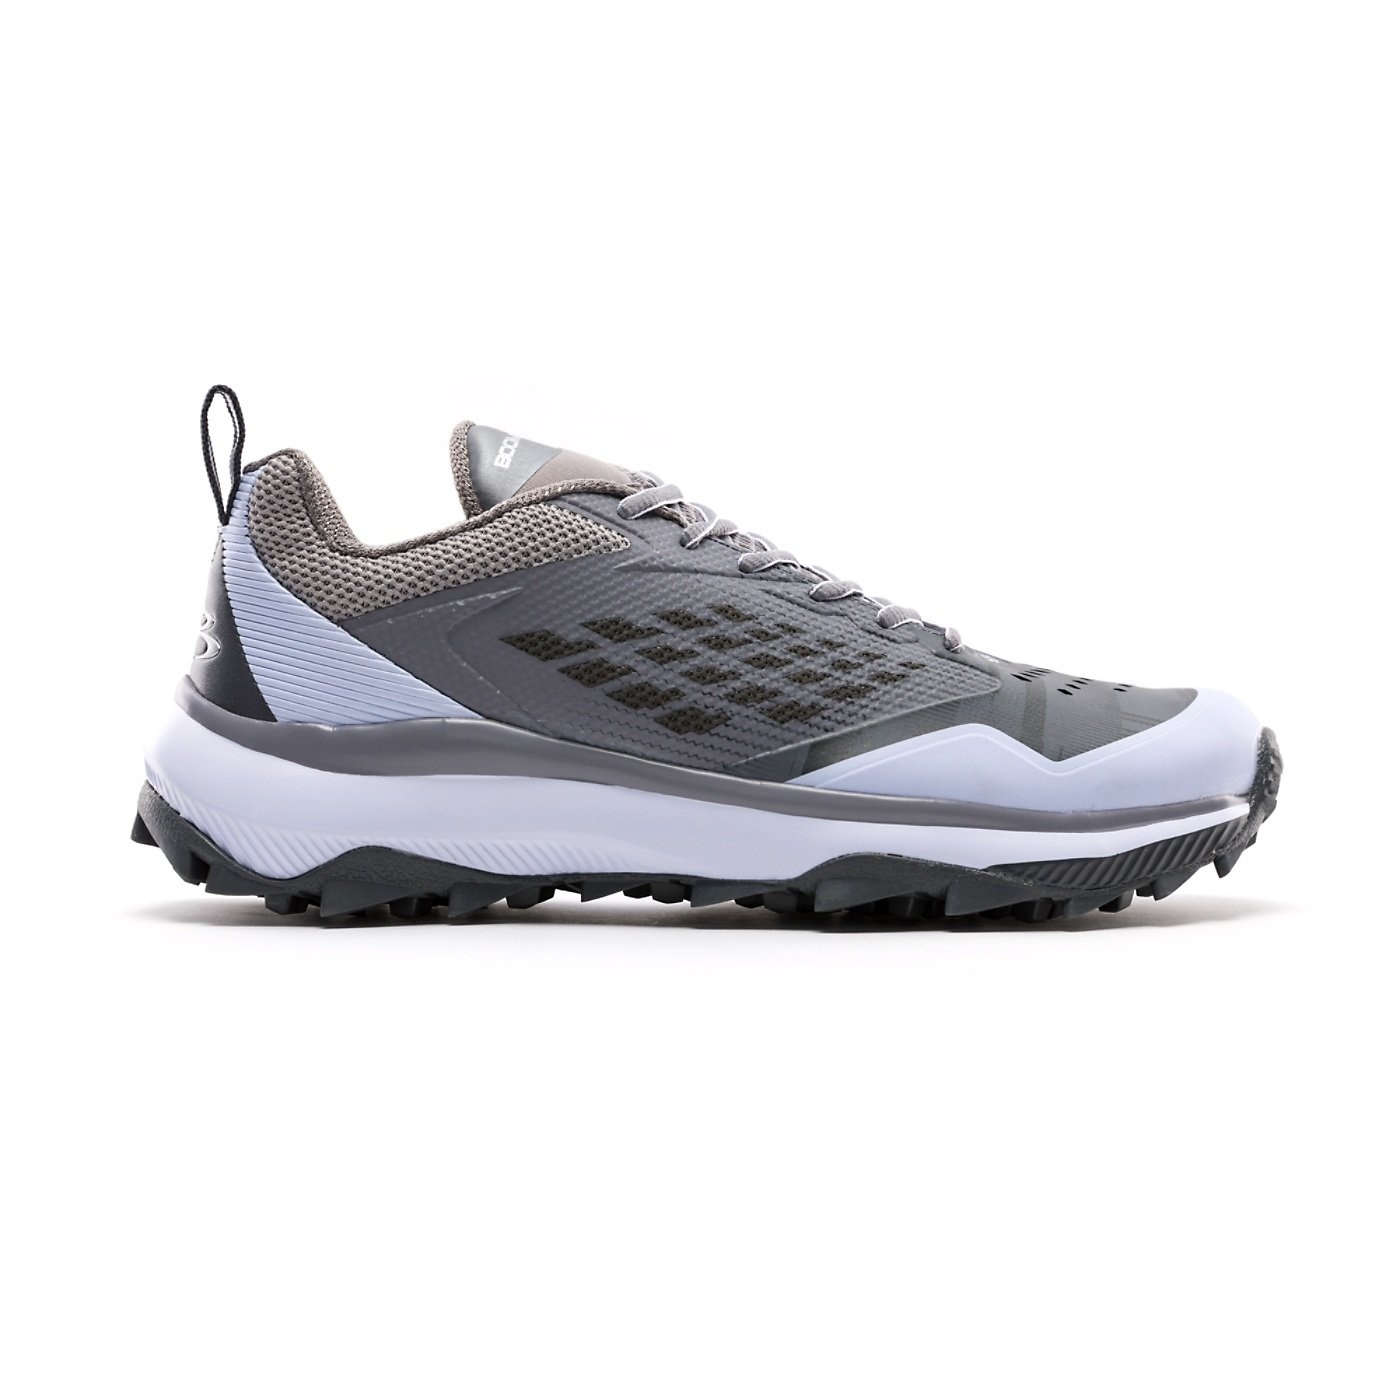 Boombah Men 's Marauder Turf Shoes – 8カラーオプション – 複数のサイズ 10.5 Gray/Charcoal B07BS4PJRB